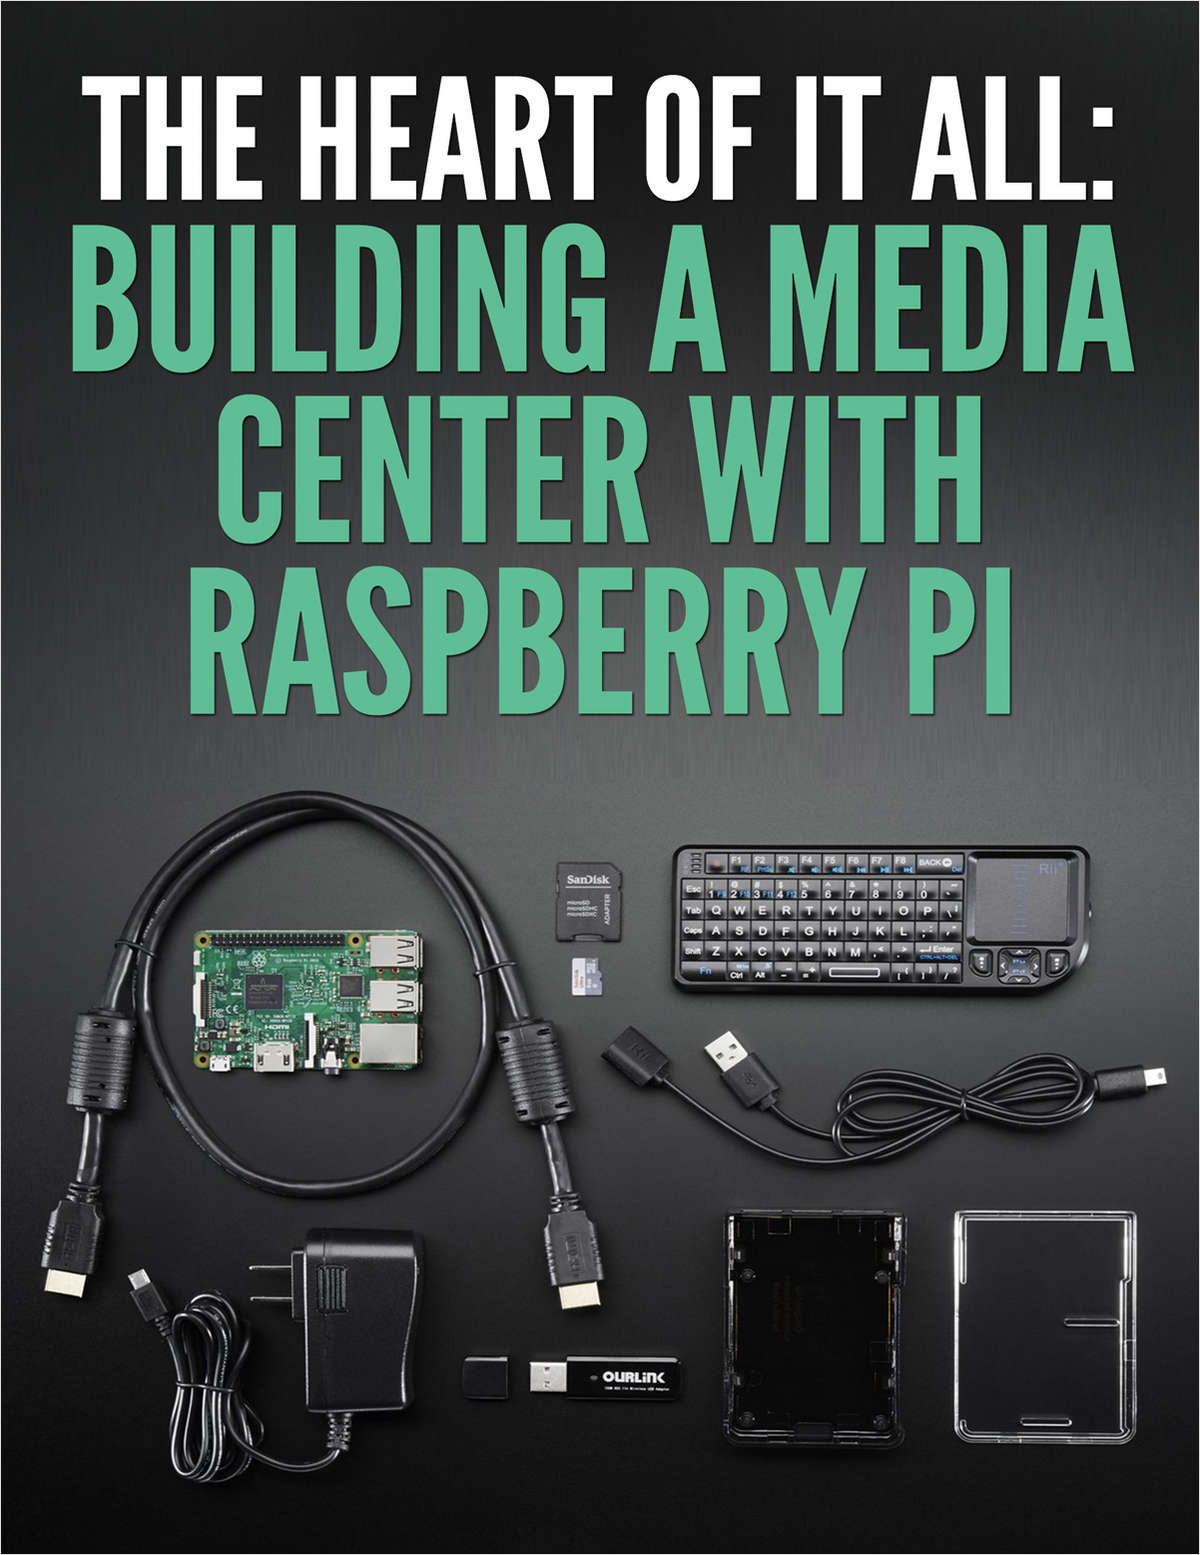 The Heart of It All: Building a Media Center with Raspberry Pi